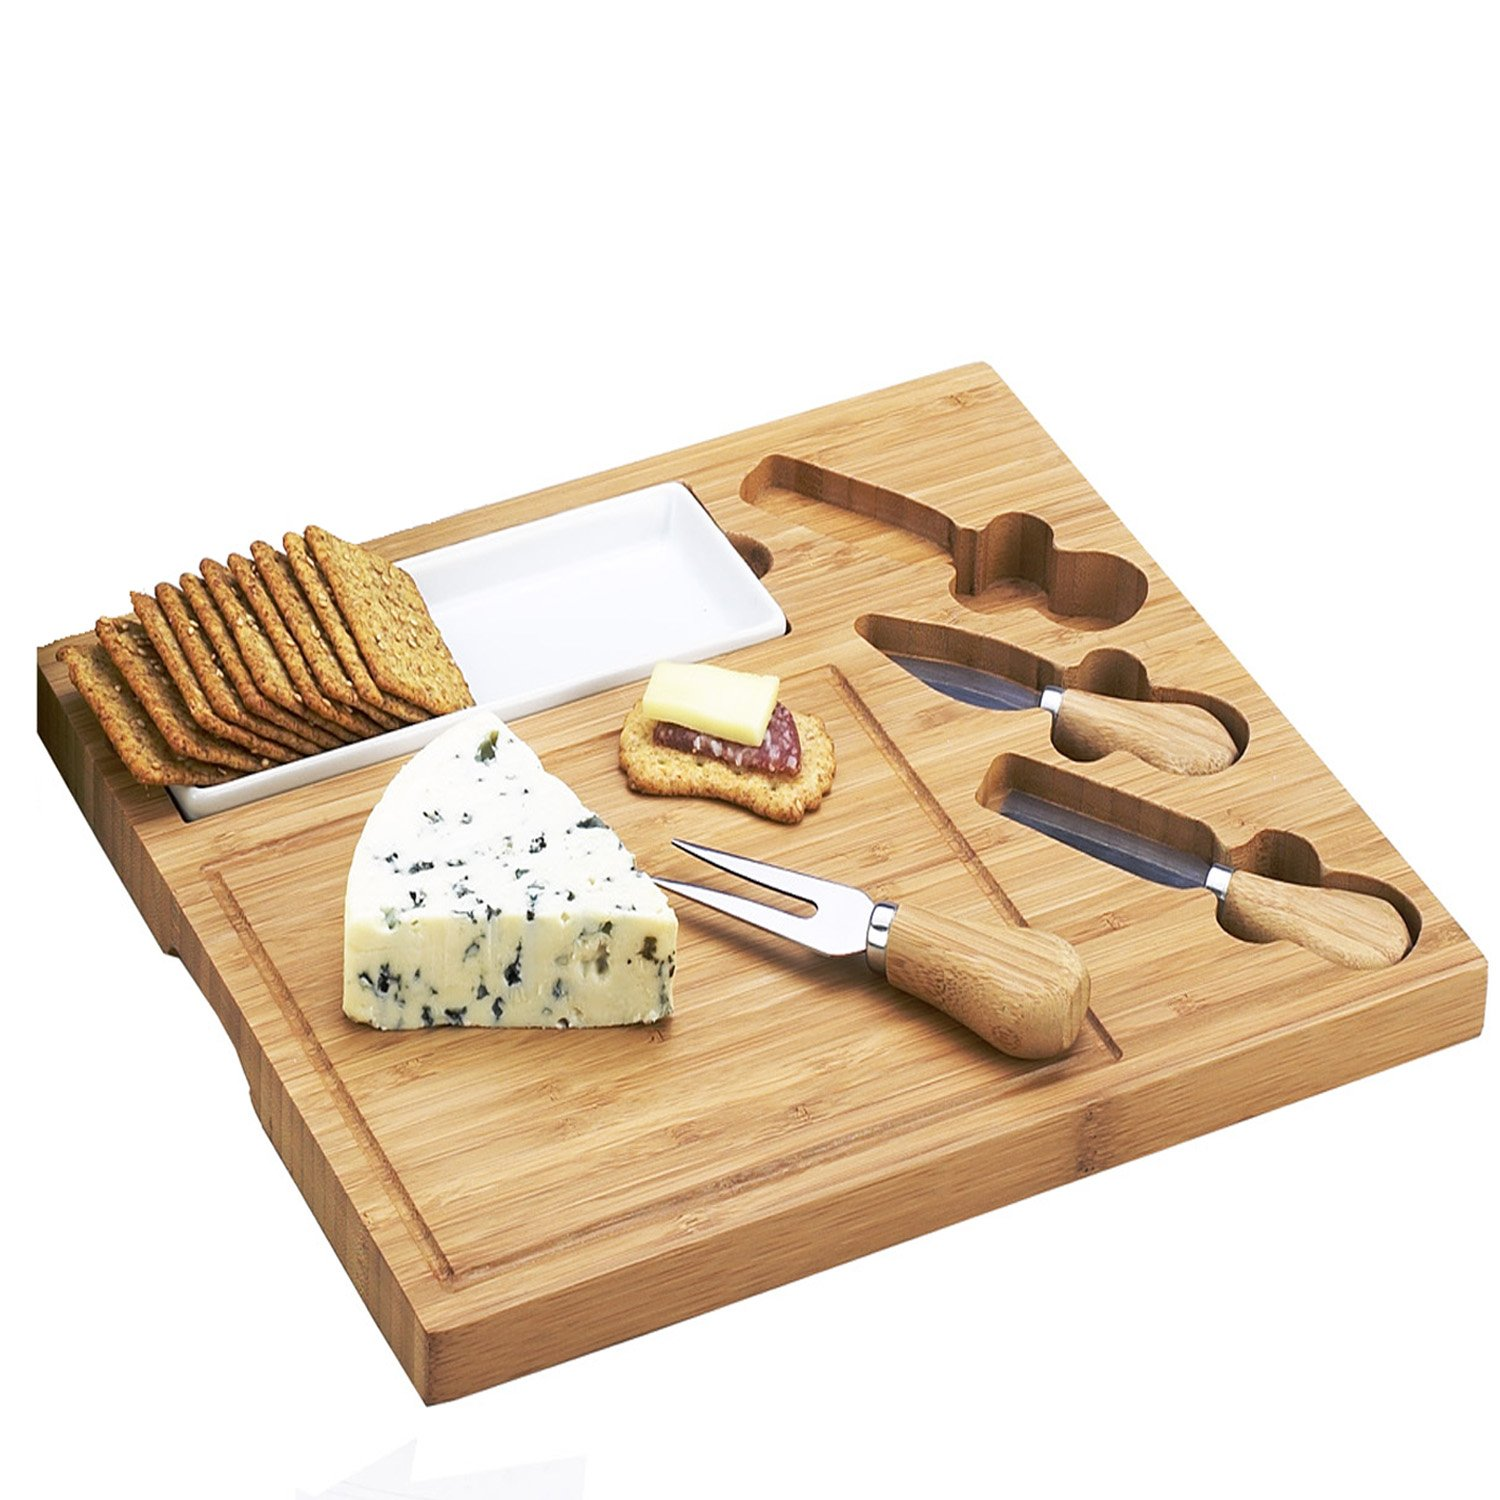 Amazon.com Picnic at Ascot Celtic Bamboo Cheese Board Set with Ceramic Dish and 3 Cheese Tools Kitchen u0026 Dining  sc 1 st  Amazon.com & Amazon.com: Picnic at Ascot Celtic Bamboo Cheese Board Set with ...